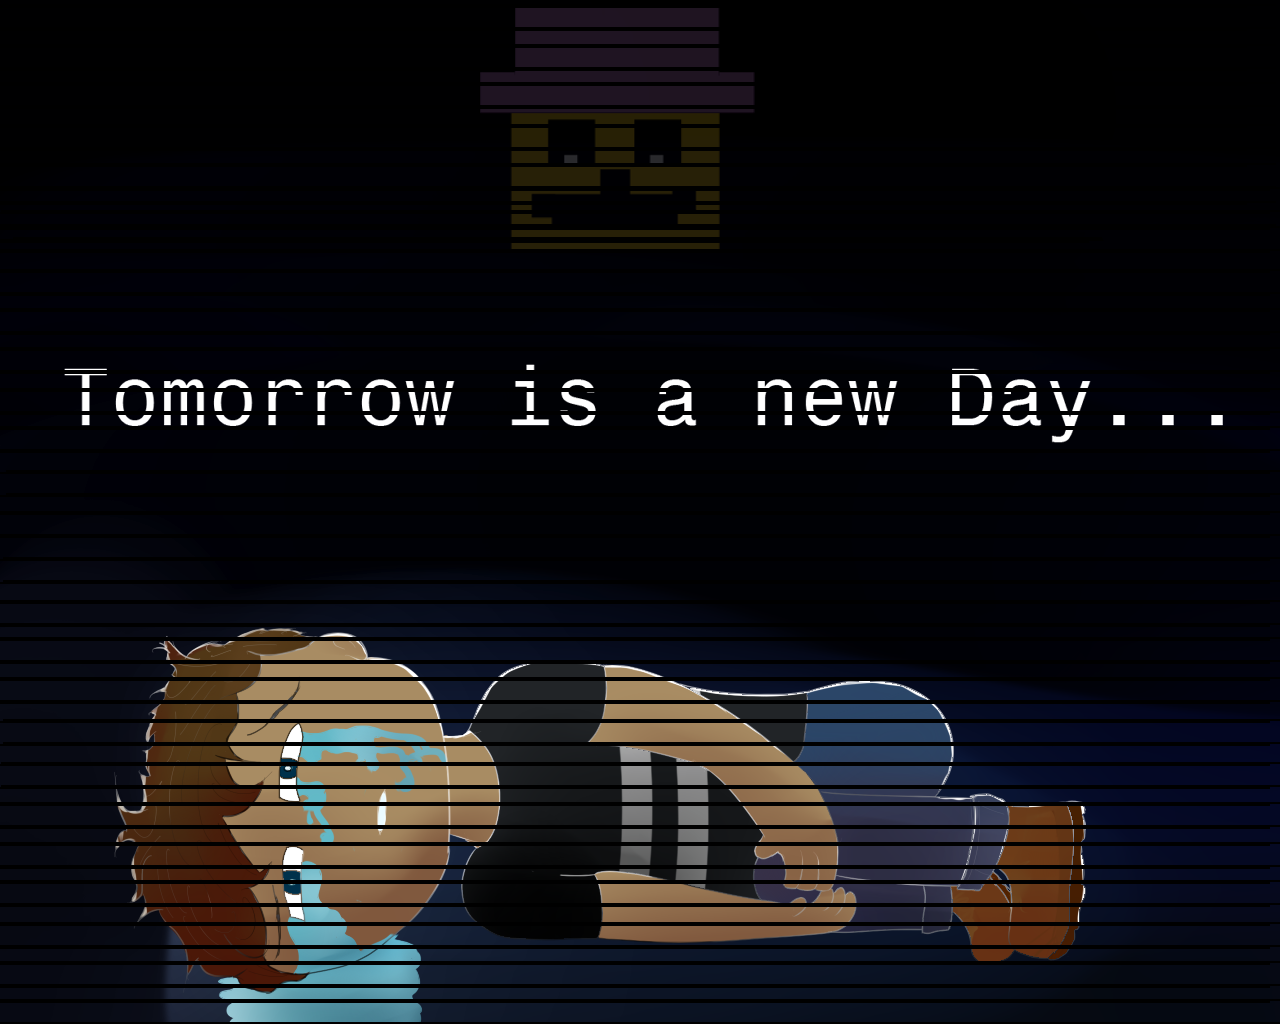 Tomorrow is a new day...